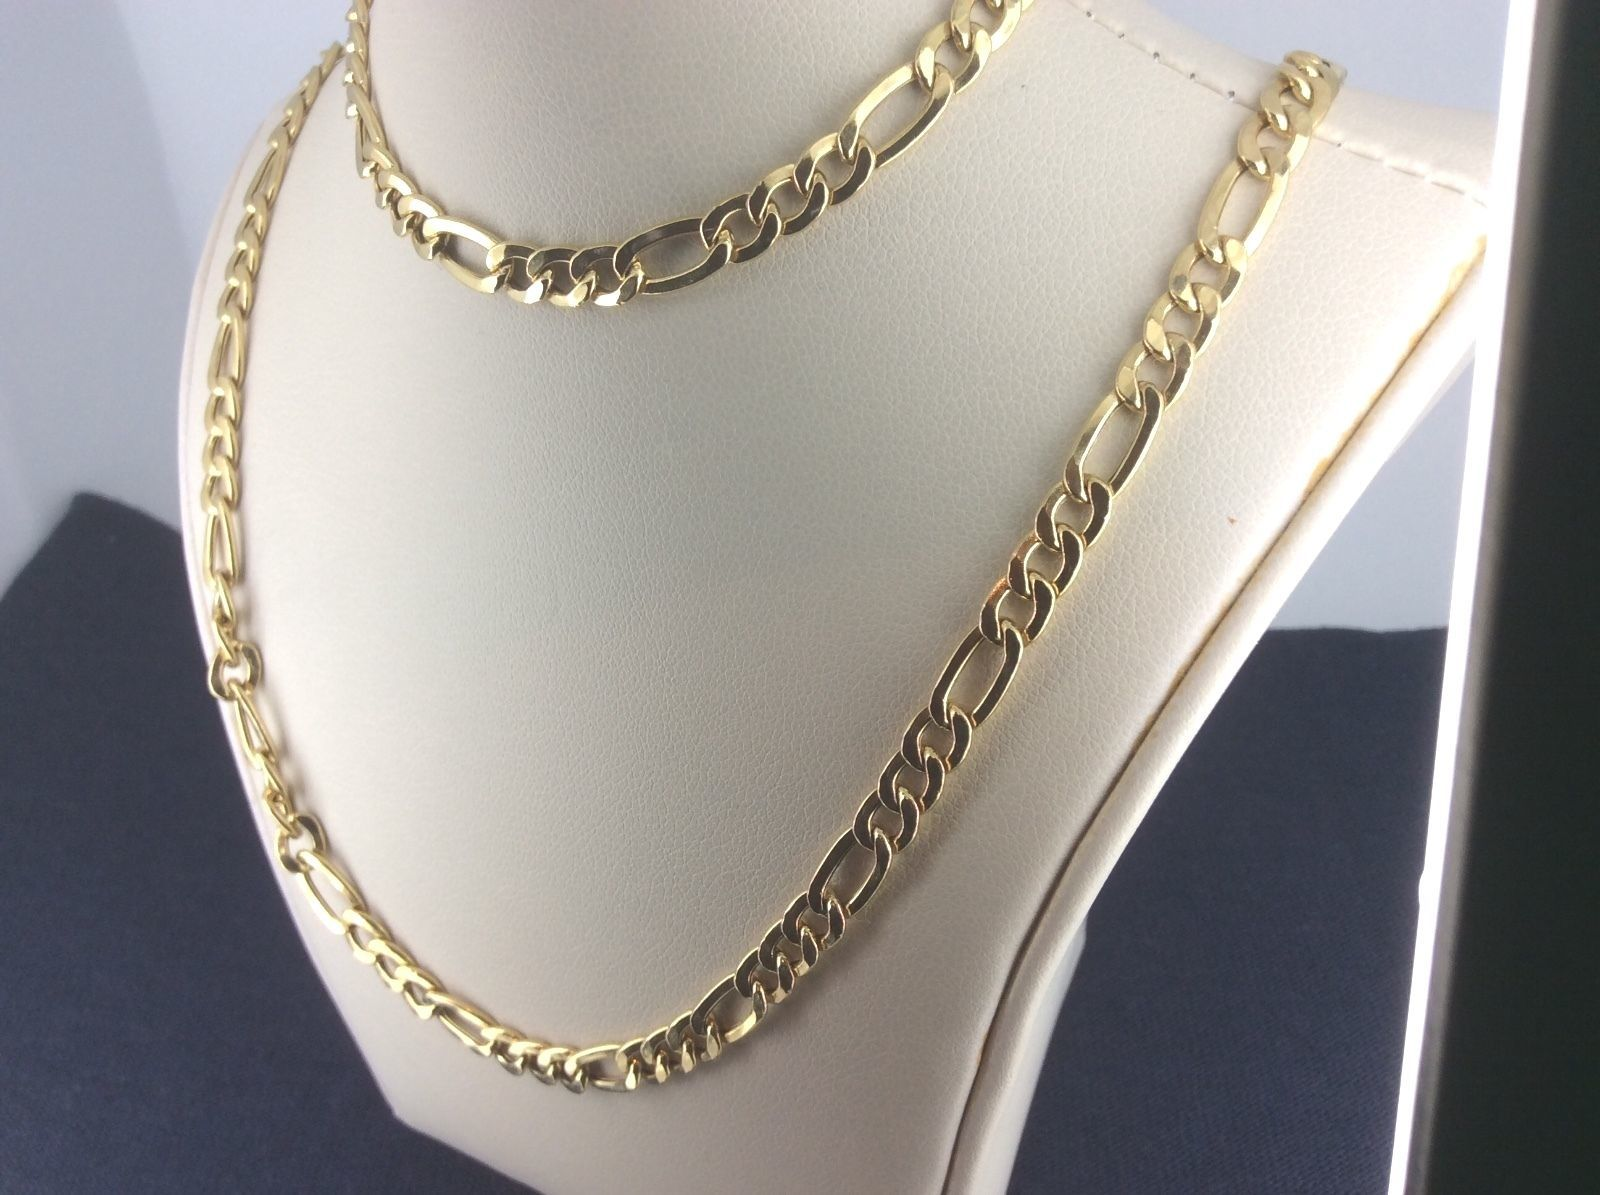 d00f573d6a6c 14kt Yellow Gold Figaro Chain 2.5 mm Width 18.0 Inch Long (4.1 Grams) by  RG D